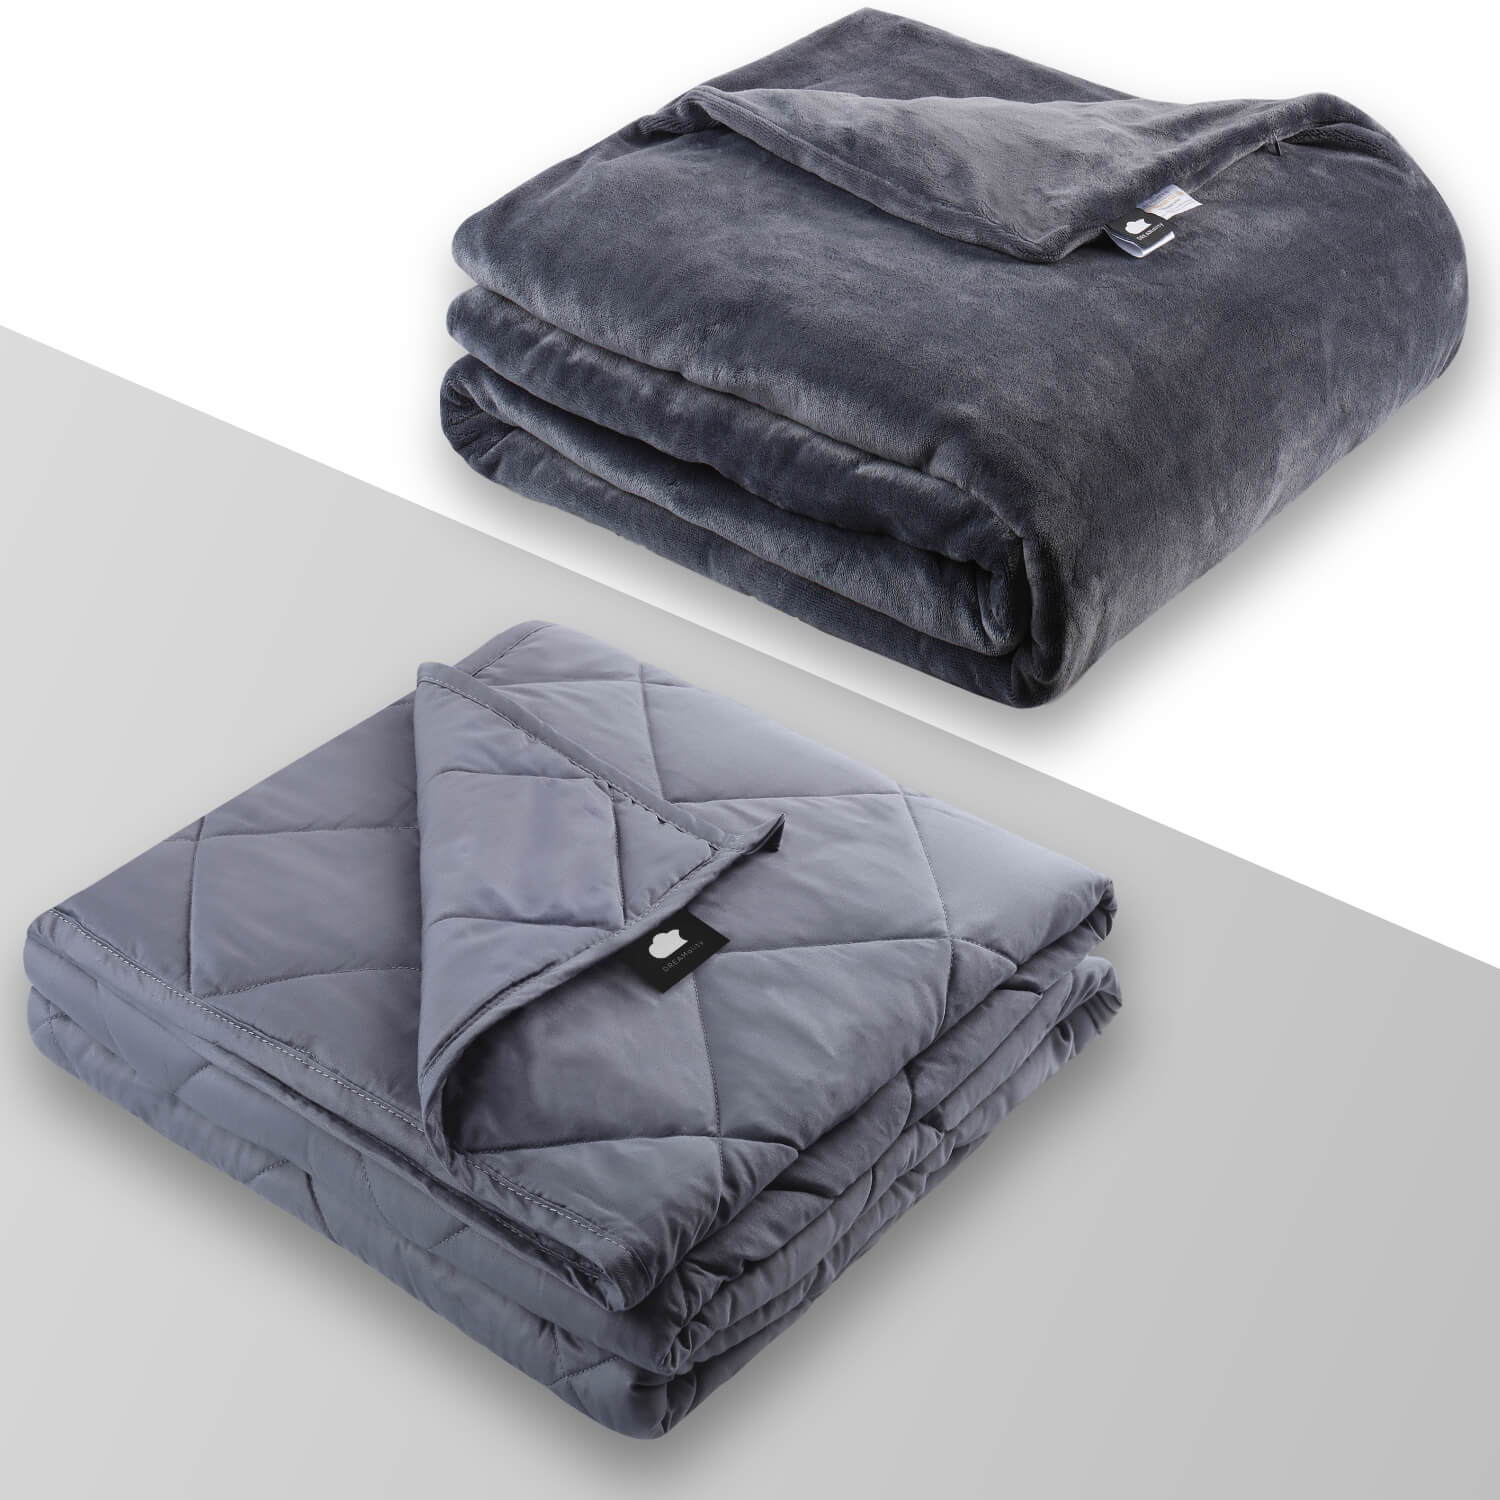 DREAMality Weighted Blanket for Adult Kids Heavy Anxiety Blanket 15 20 25 lbs Twin Full Queen King Size Cooling Throw